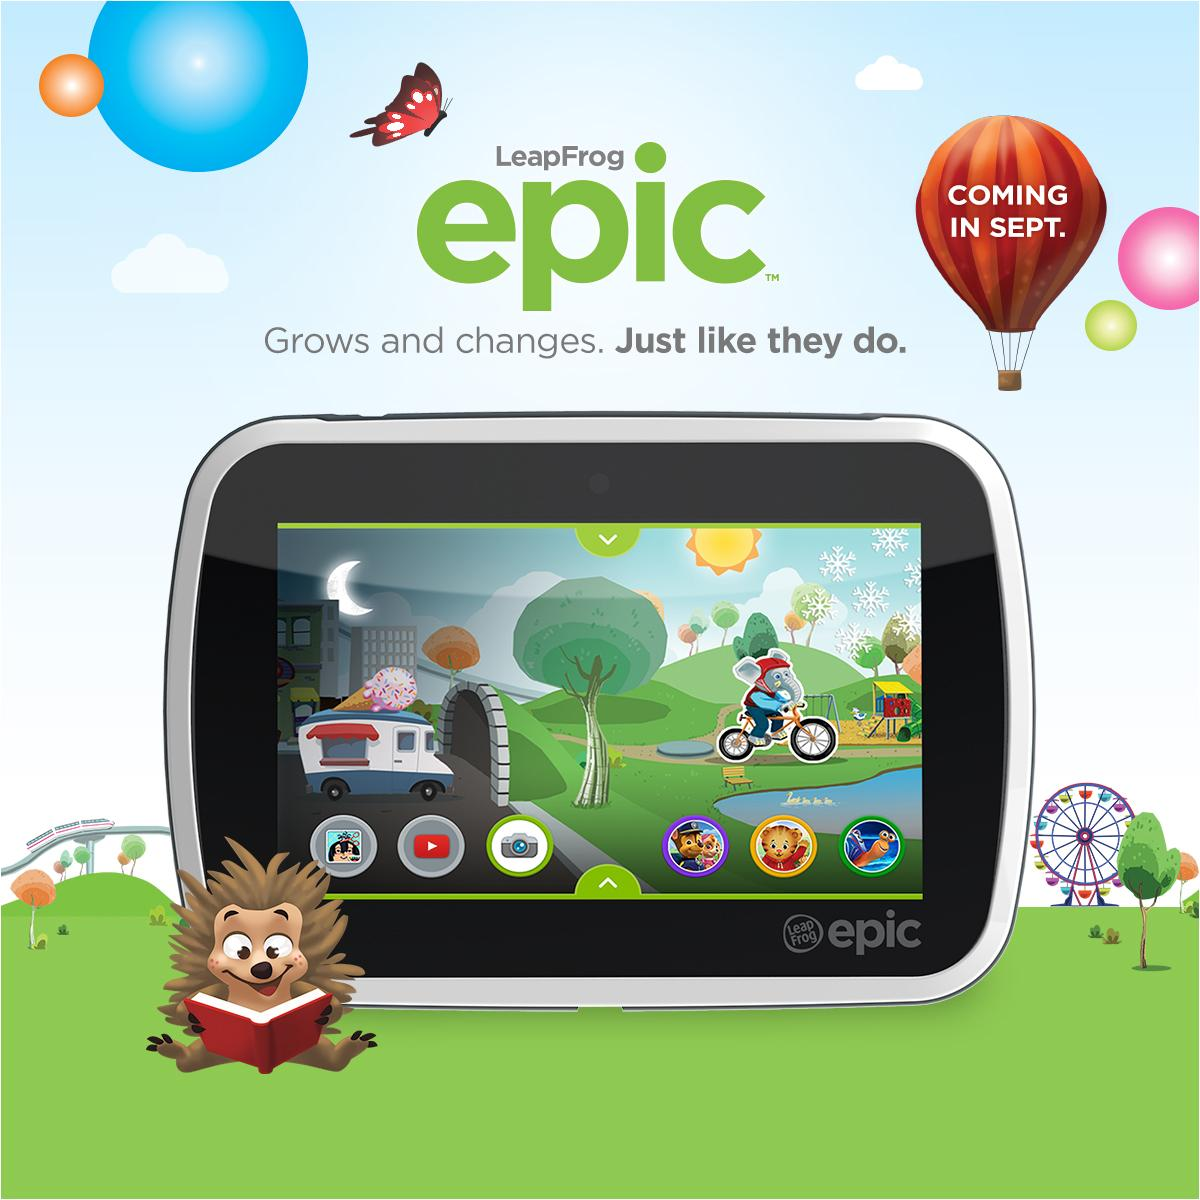 Introducing LeapFrog Epic! Sign up now for a chance to win a $500 prizepack! http://t.co/nGsSDHRIE4 http://t.co/DzJ5rCtWJQ